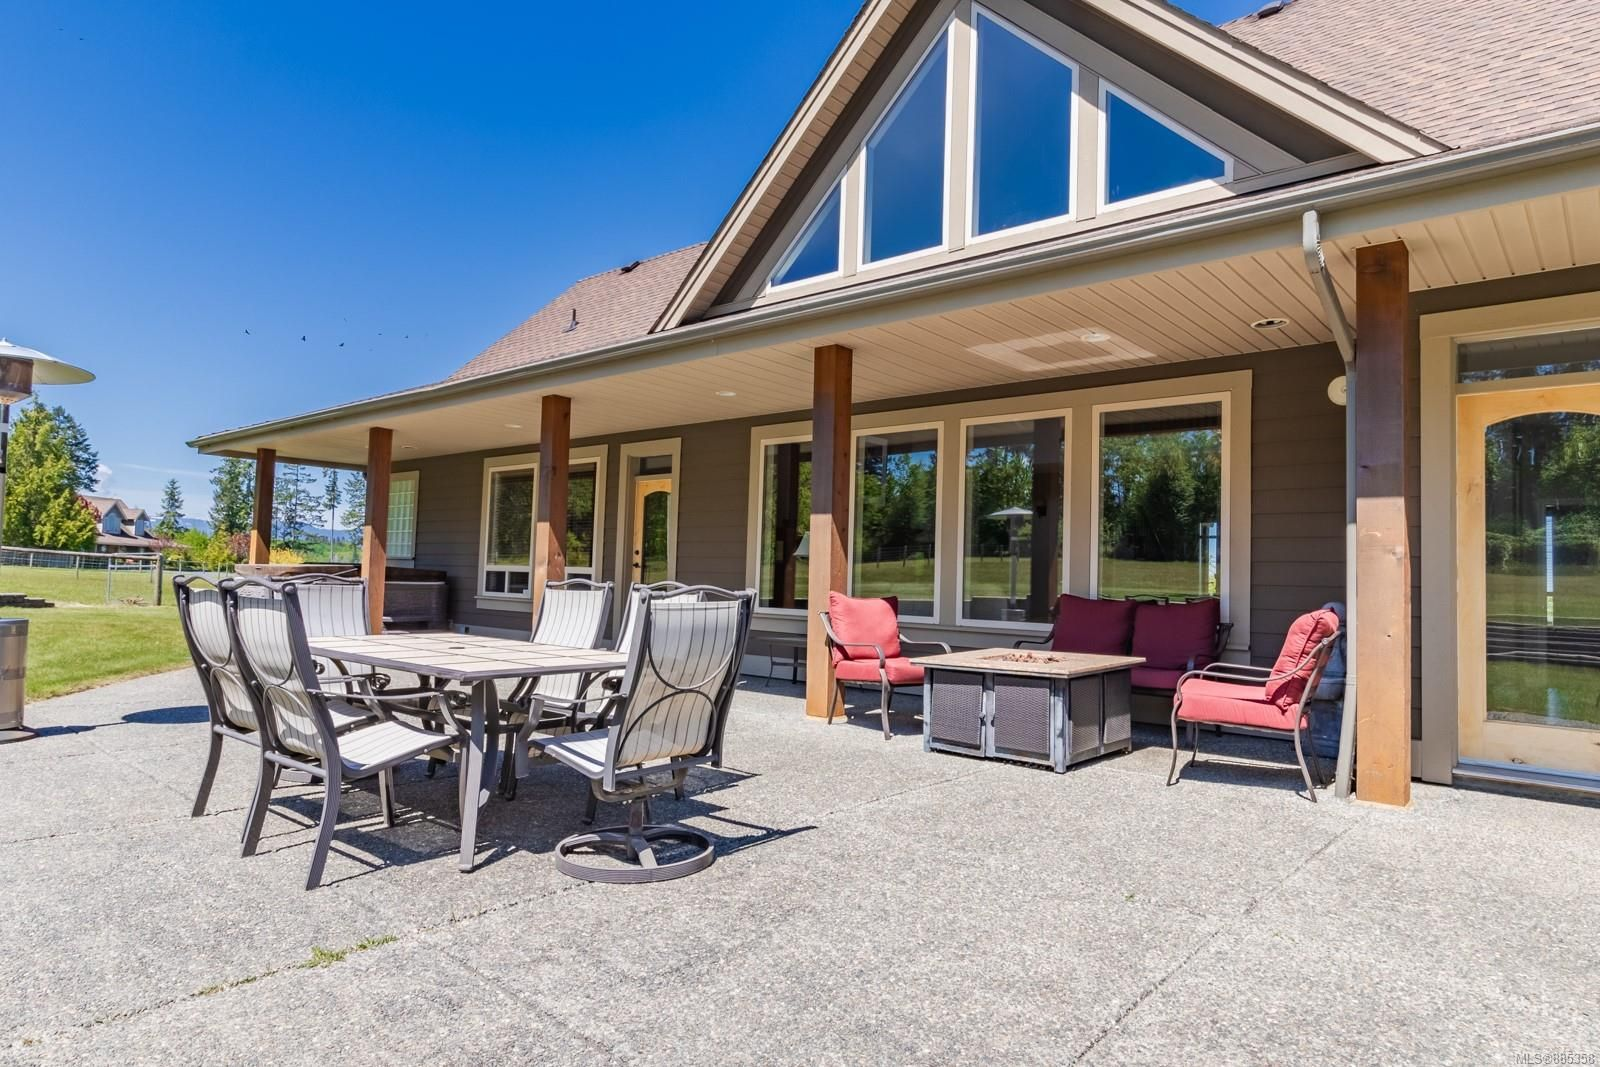 Photo 51: Photos: 2850 Peters Rd in : PQ Qualicum Beach House for sale (Parksville/Qualicum)  : MLS®# 885358